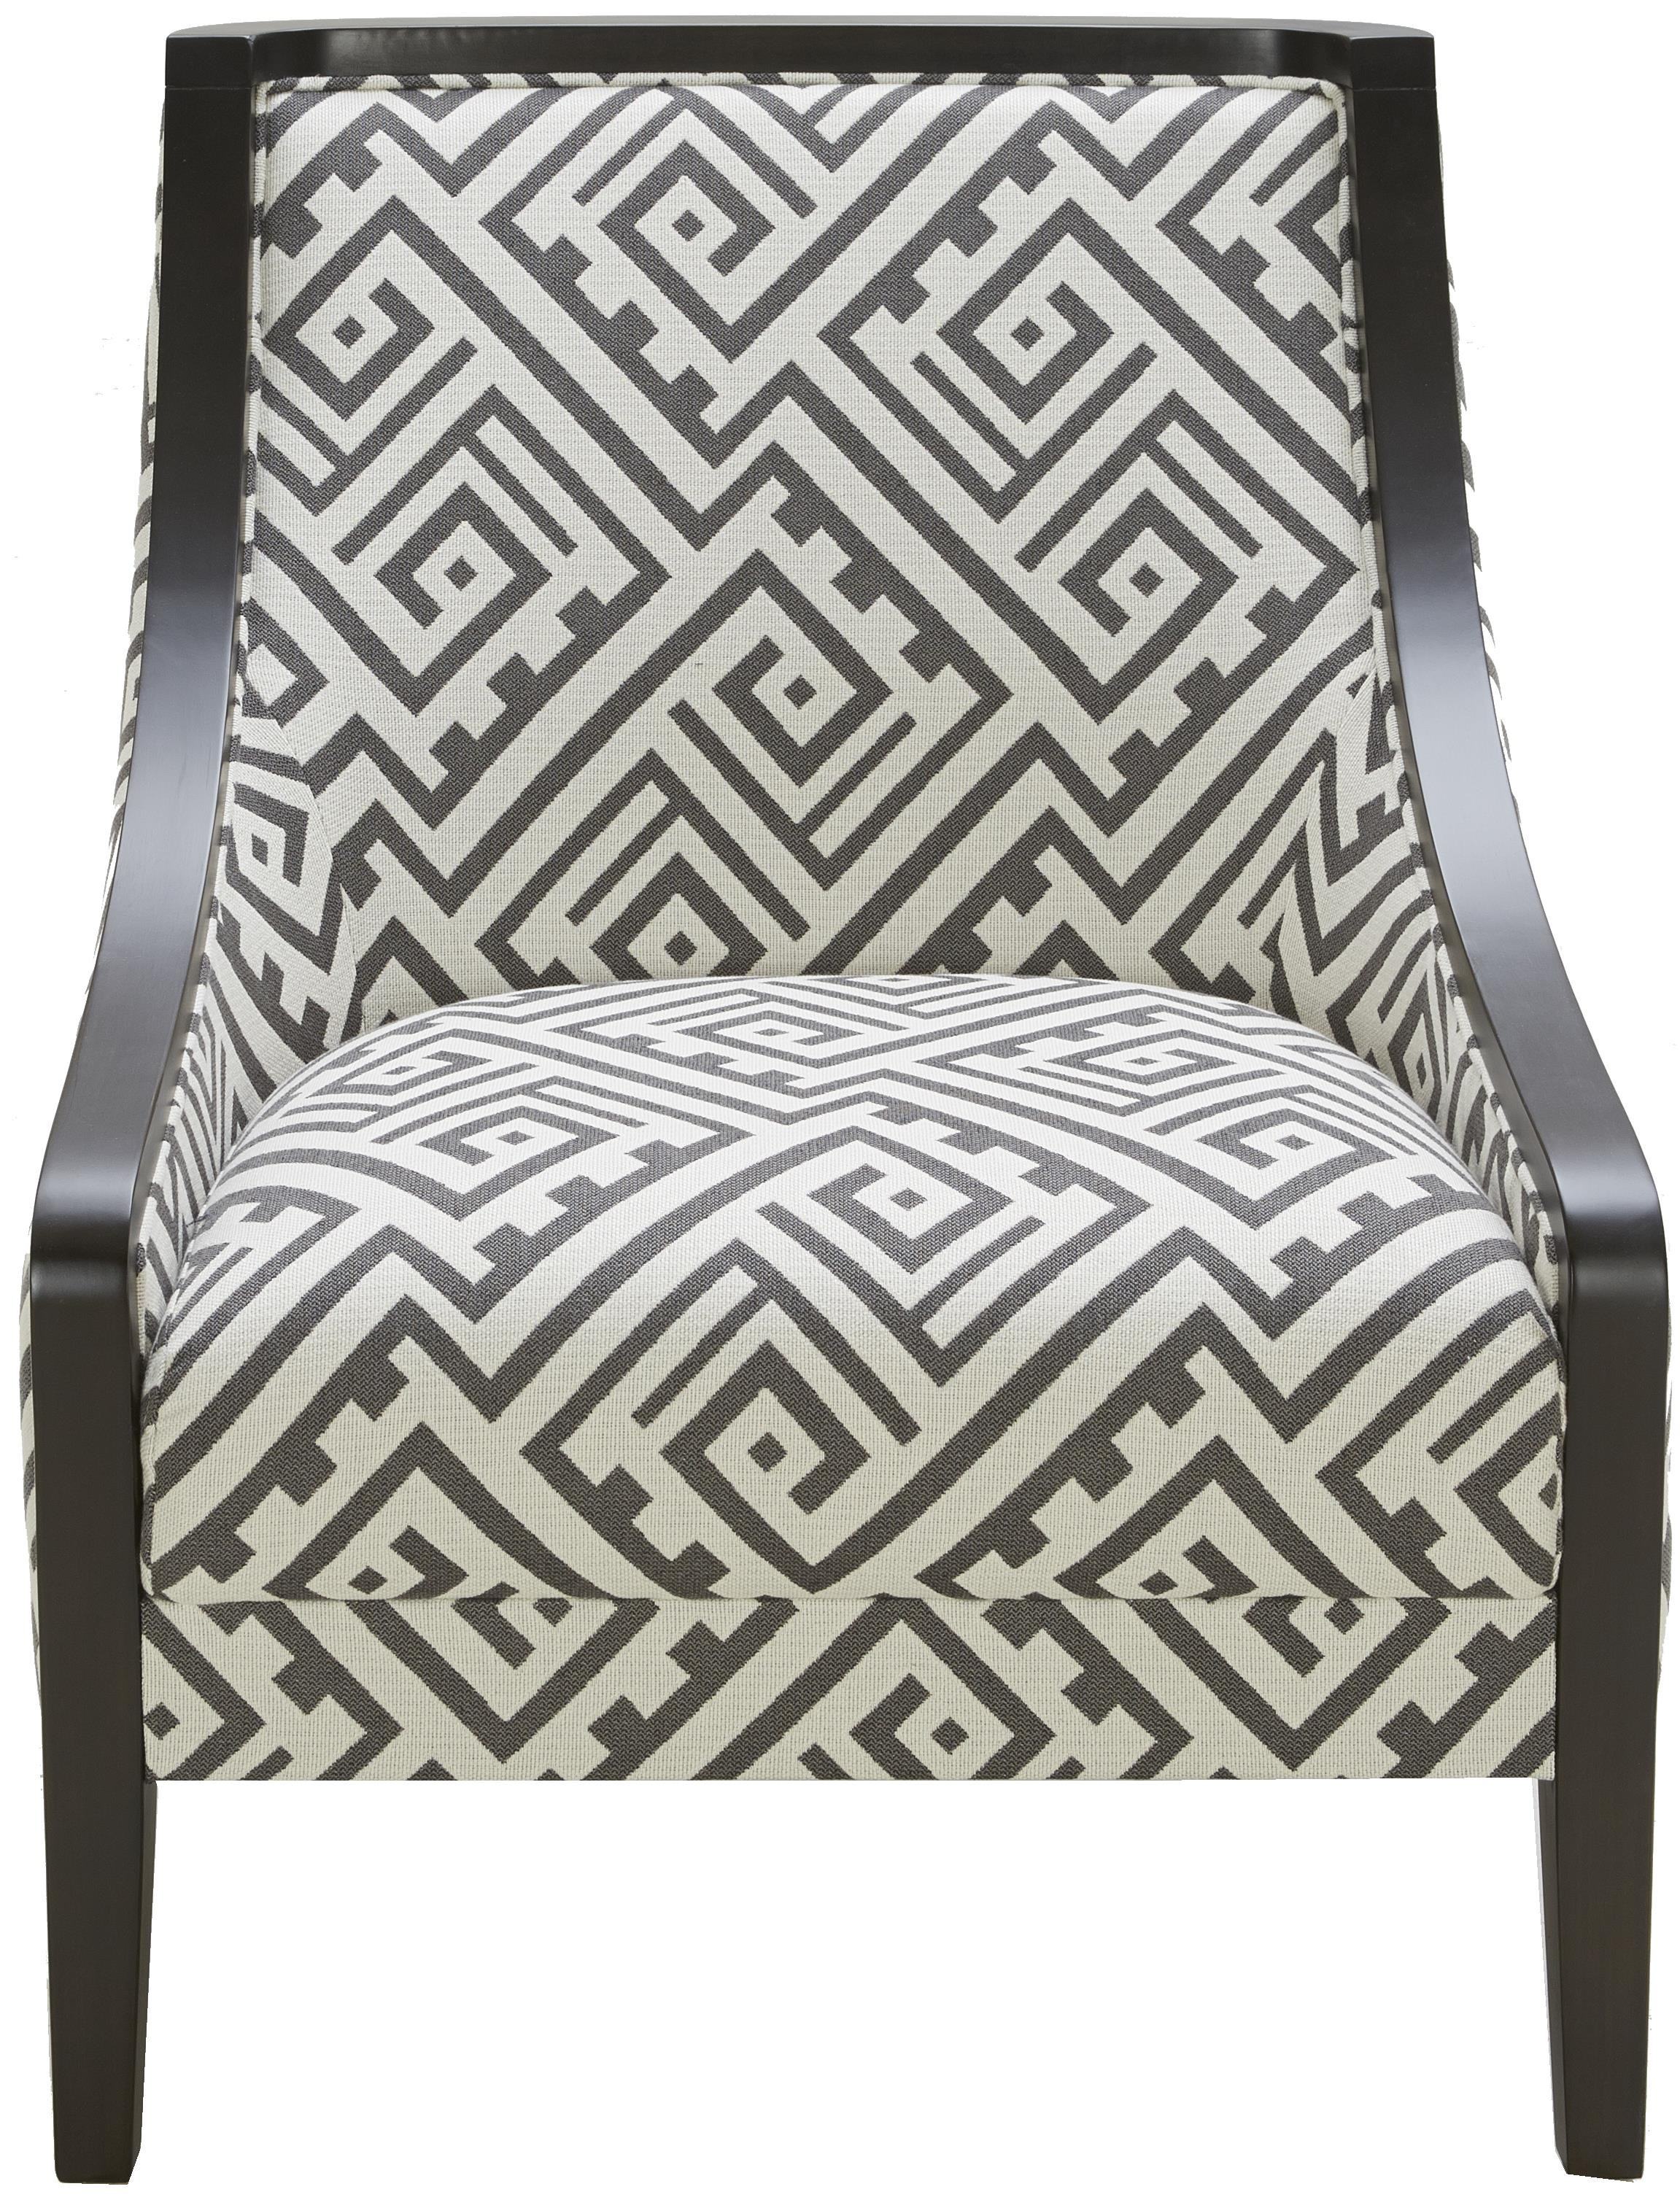 Urban Accents Furniture Intended Urban Evolution Wood Trimtraditional Accent Chair Trim Traditional With Exposed